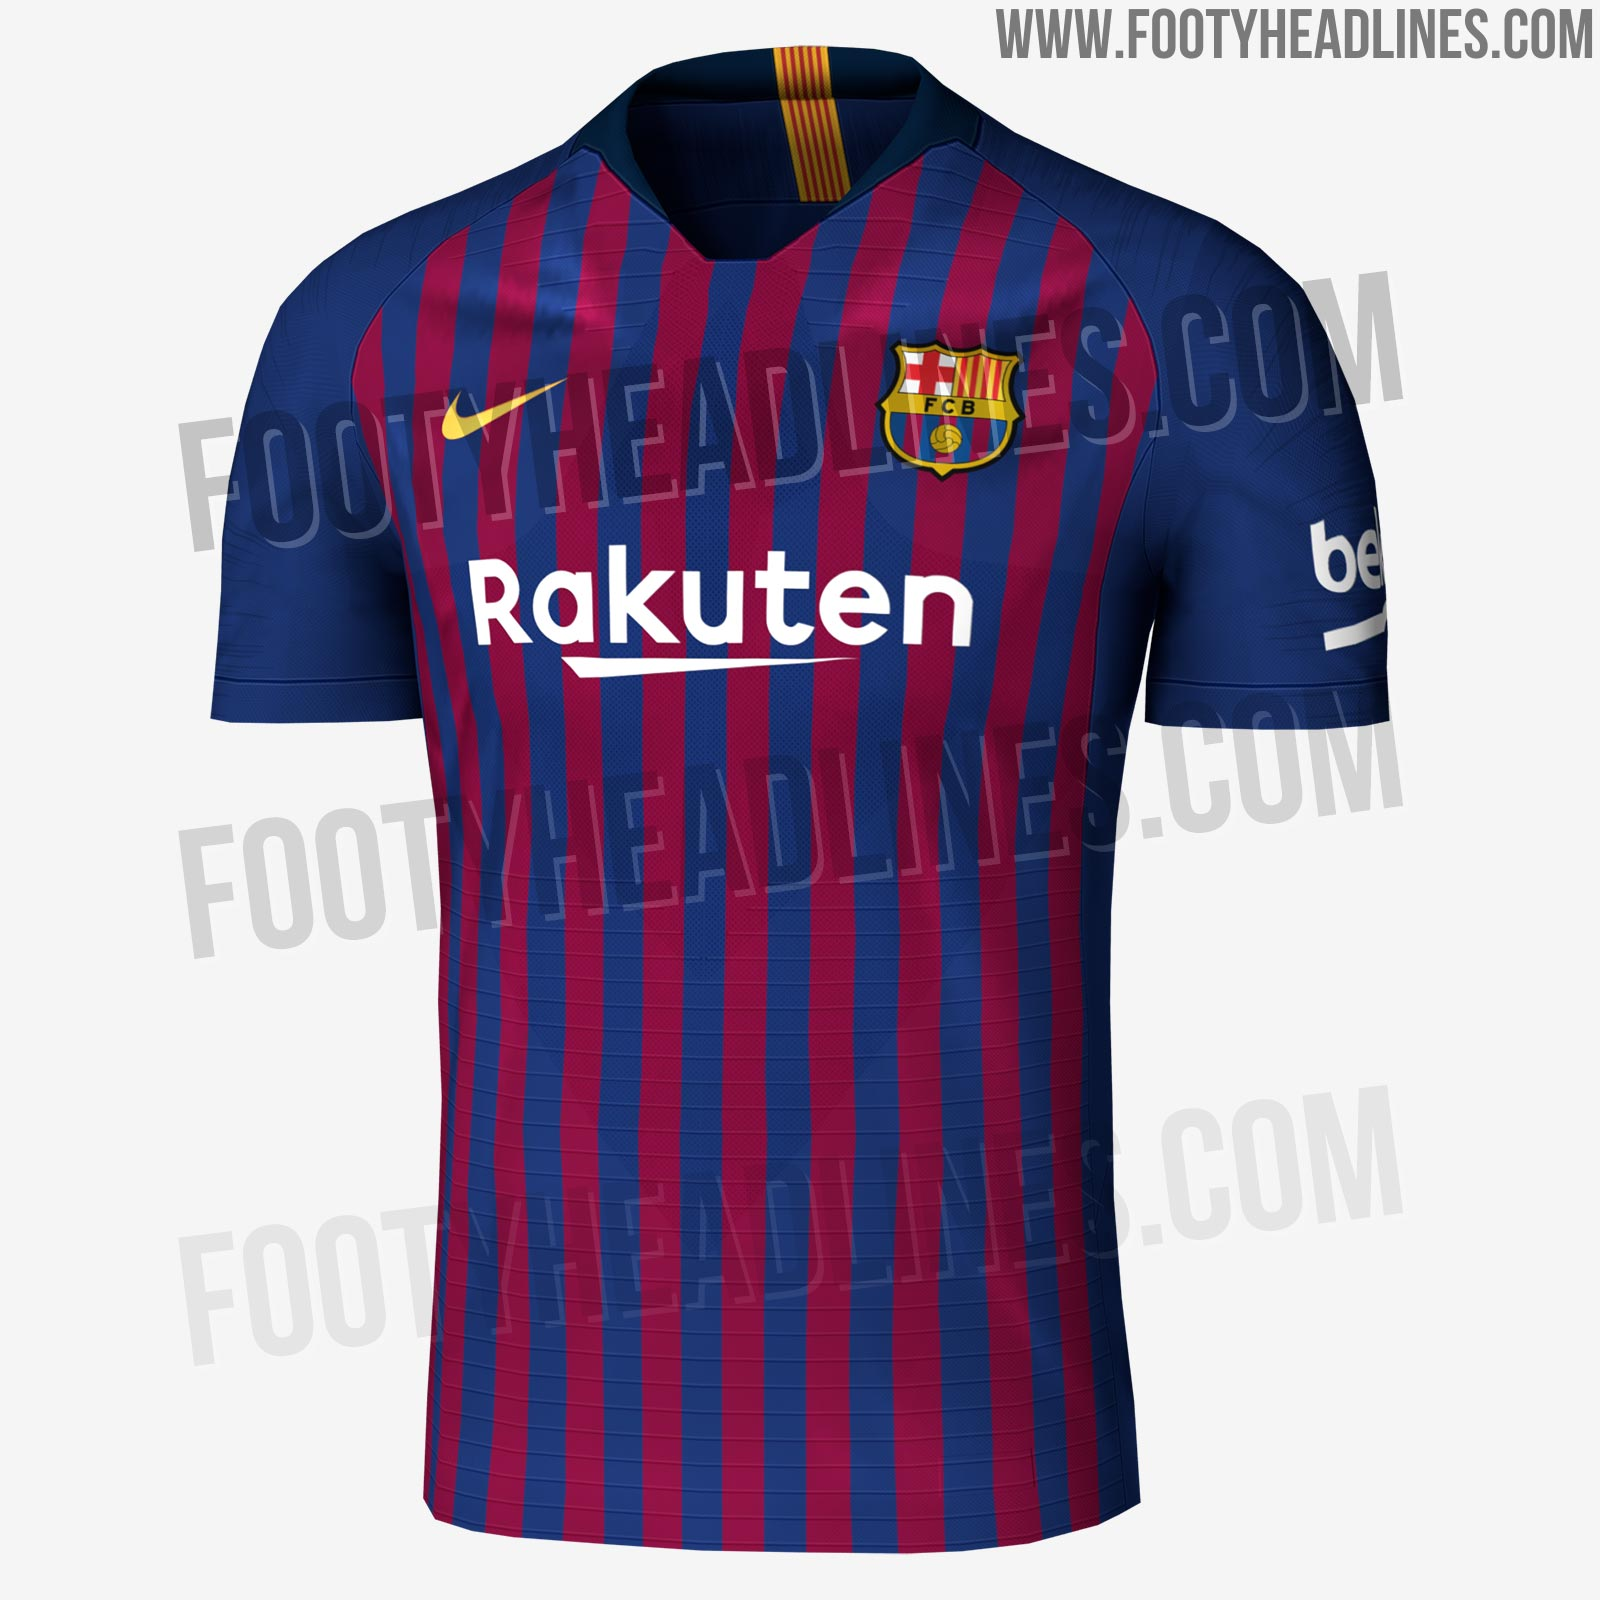 Exclusive fc barcelona 18 19 home kit leaked release - New home barcelona ...